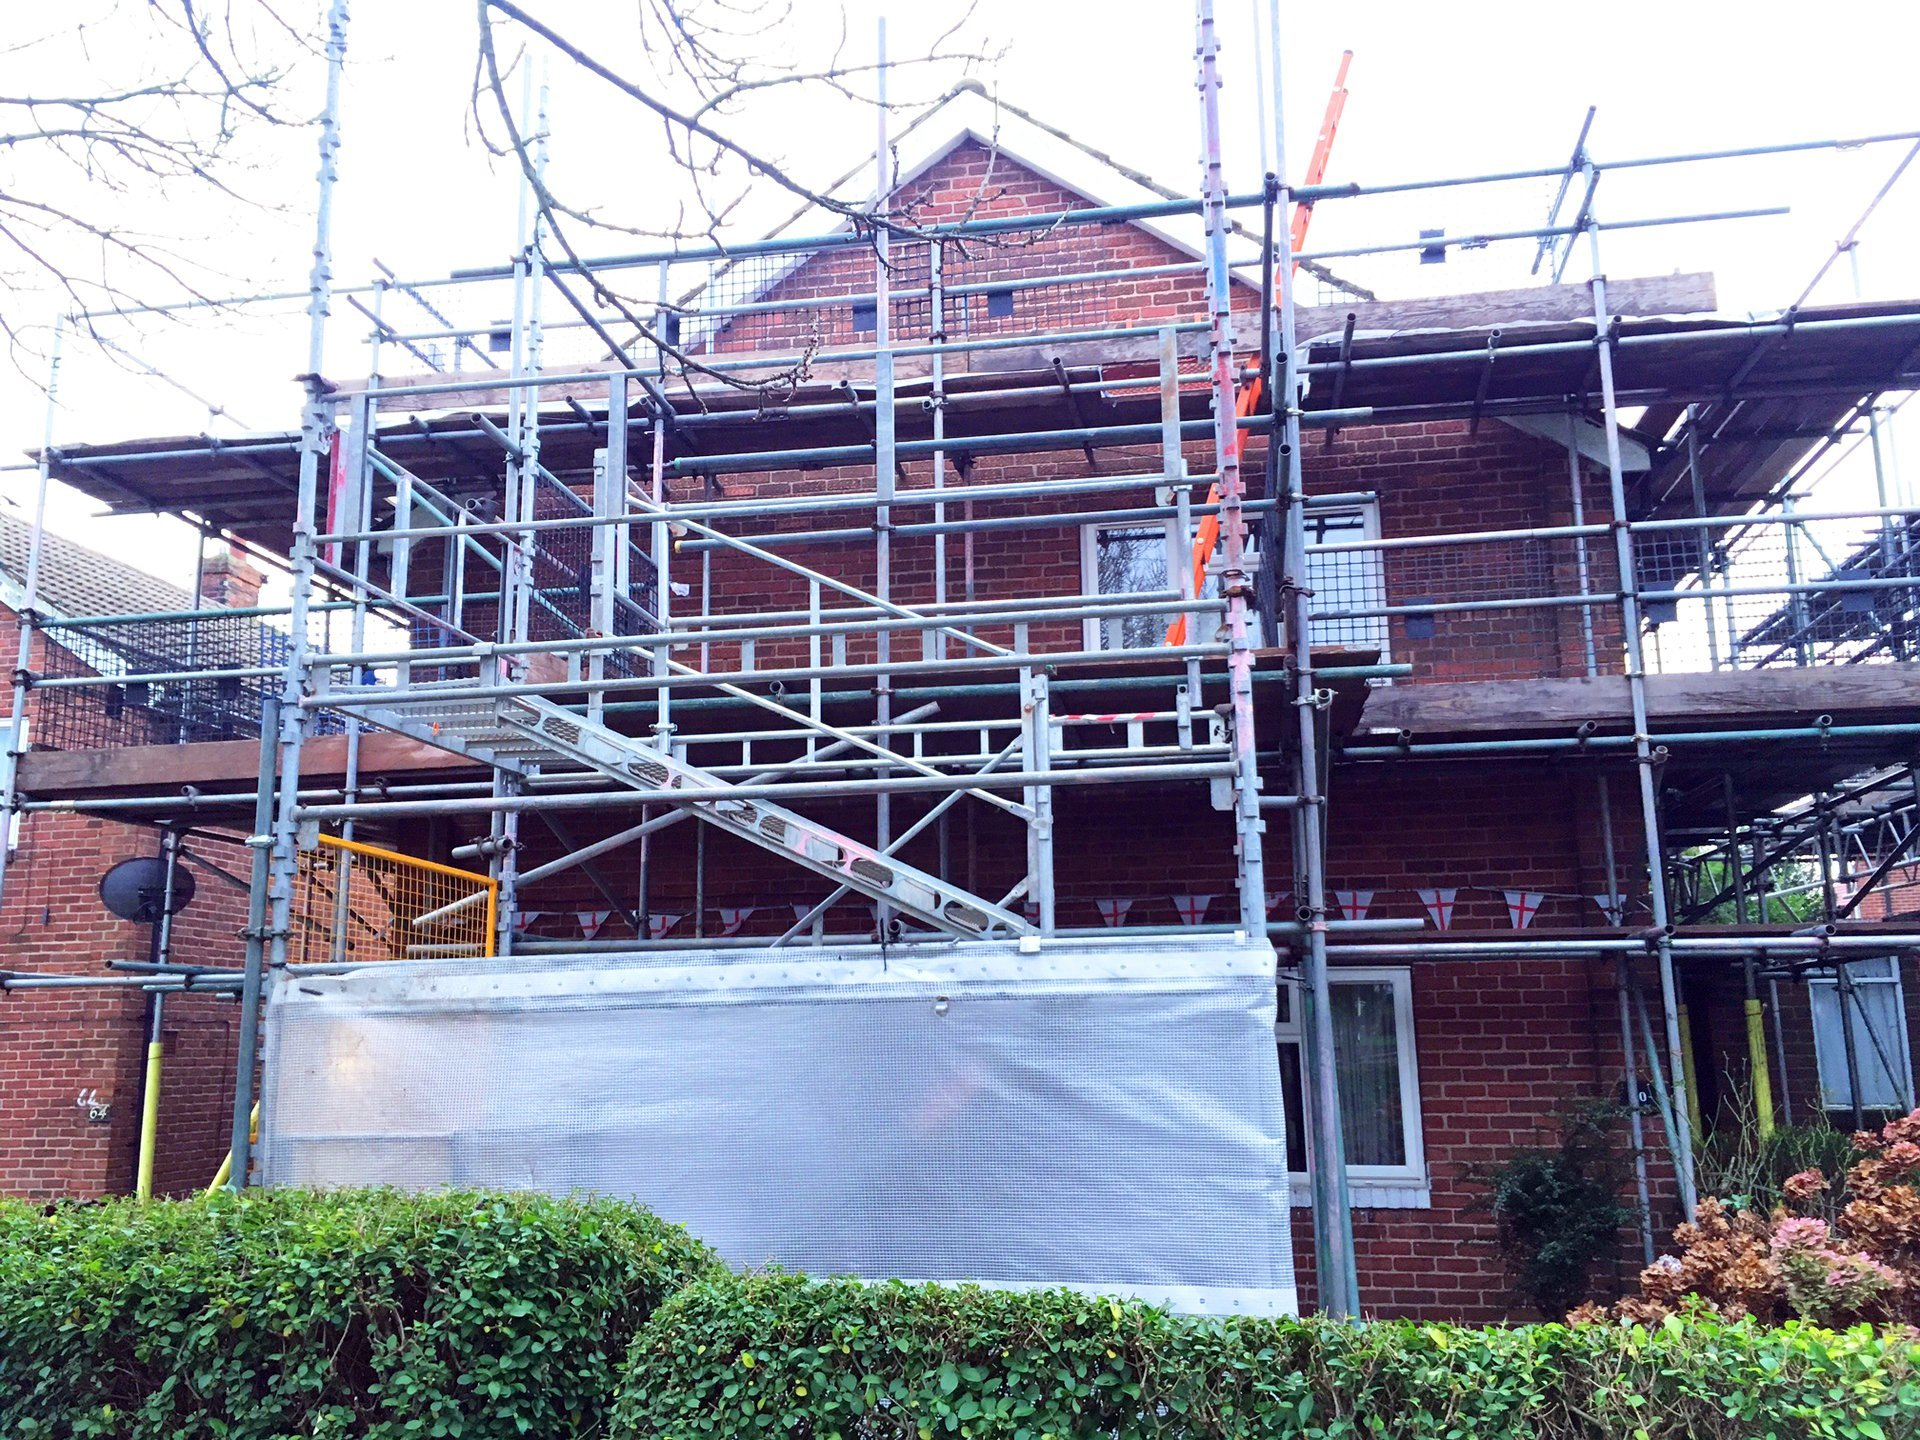 Scaffolding with steps